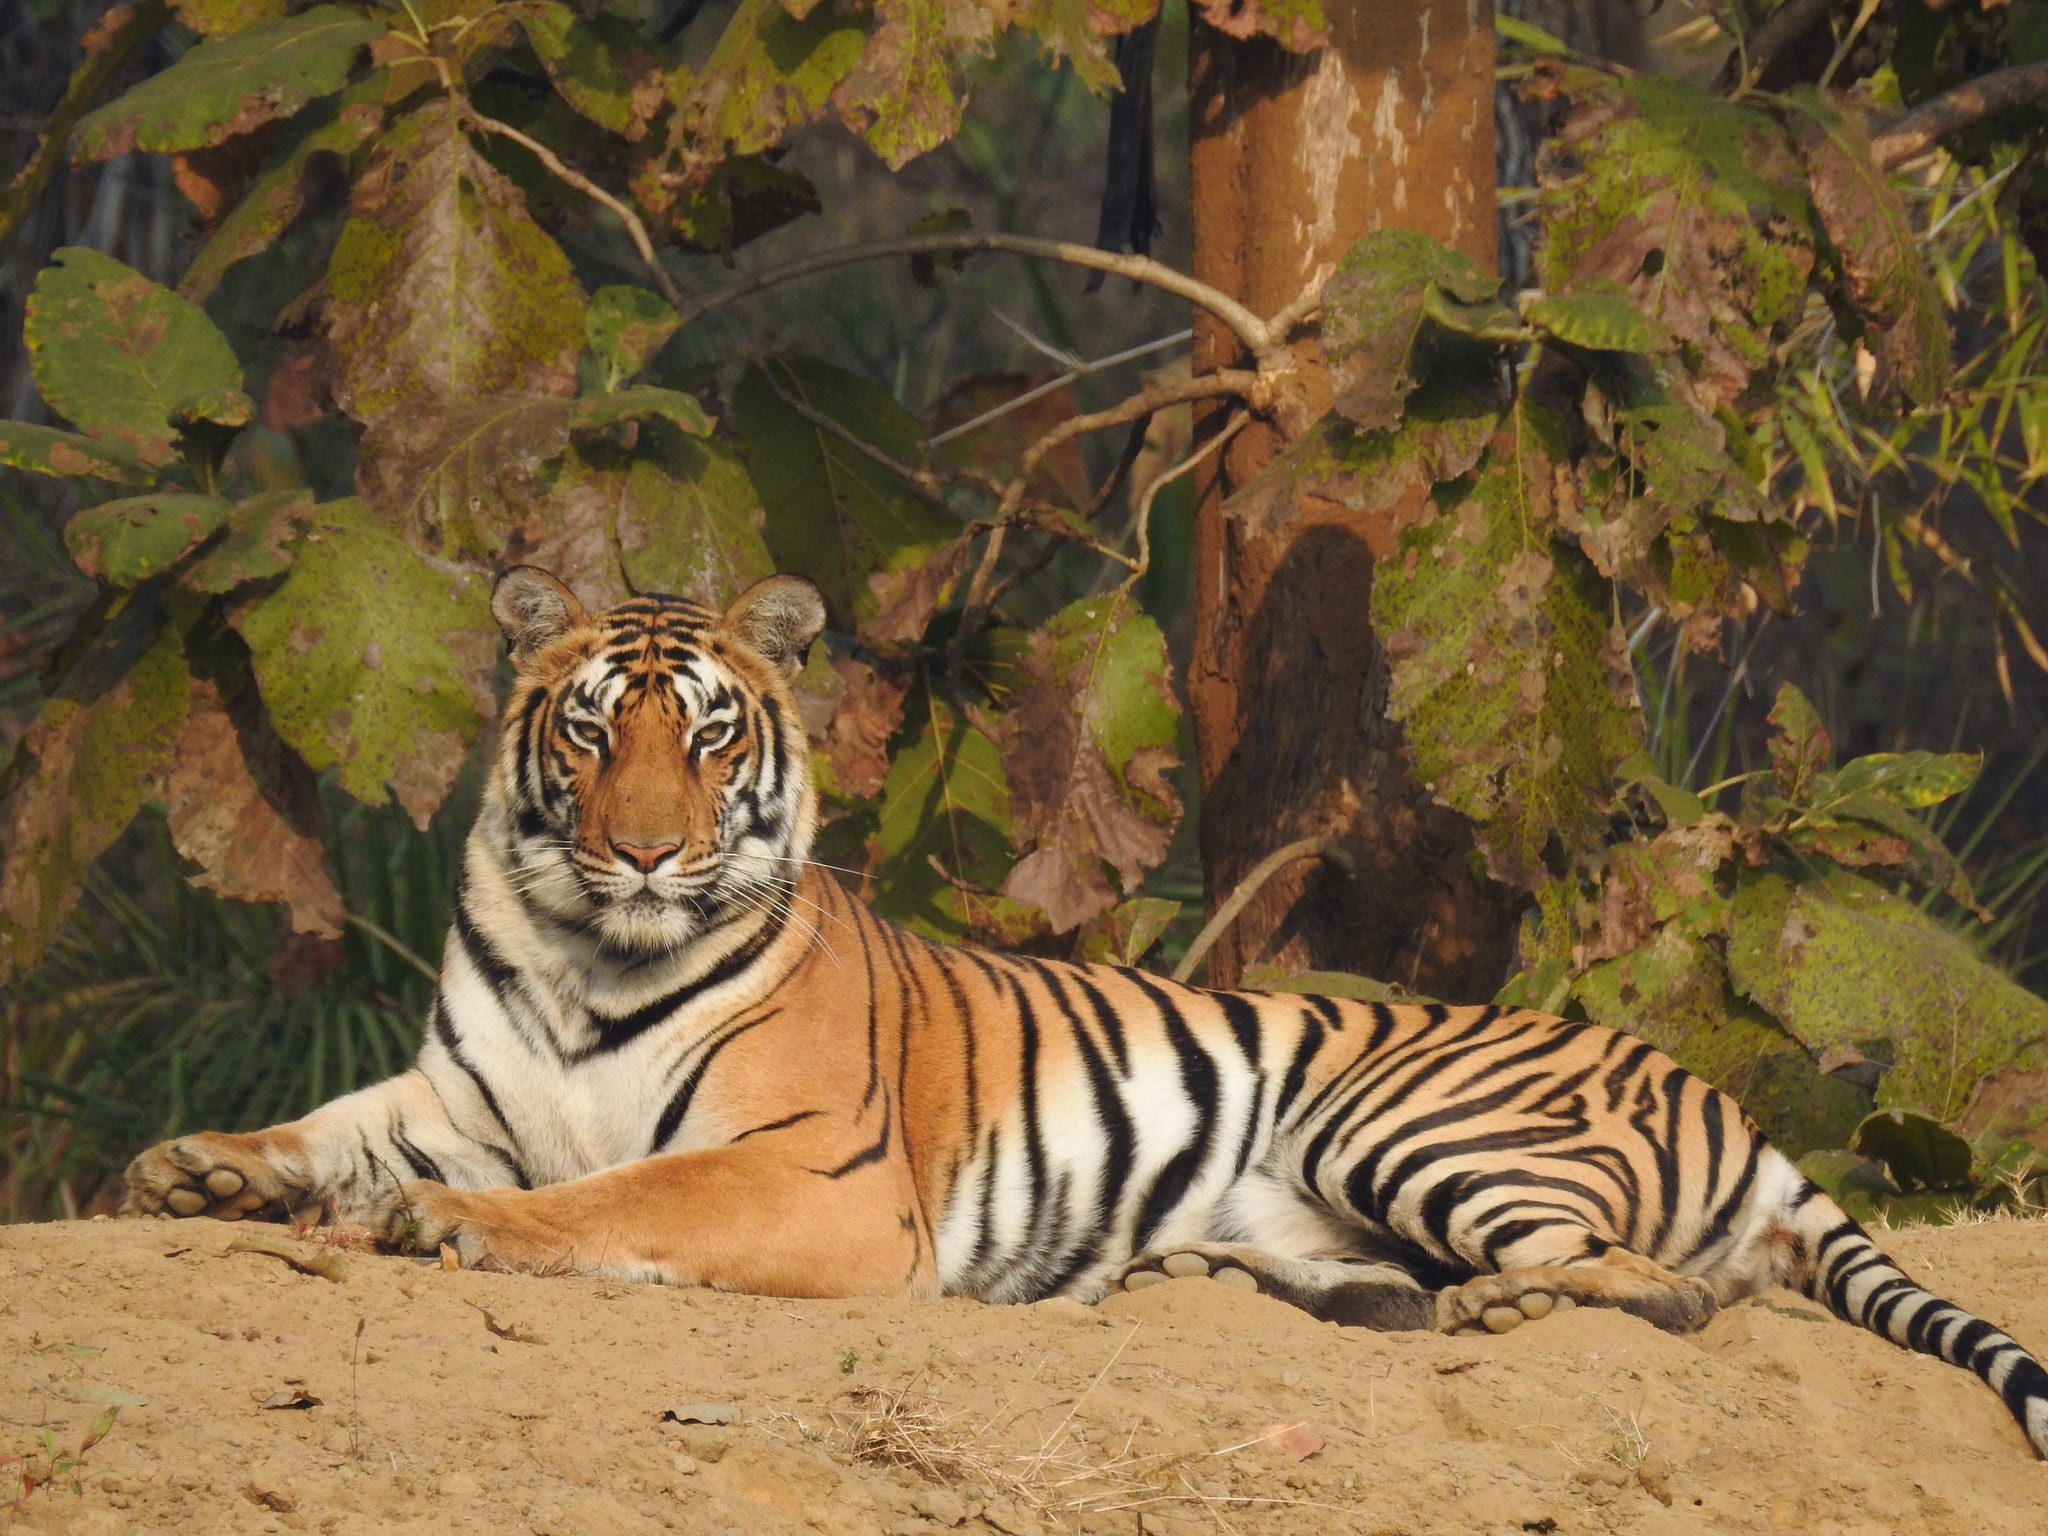 Disturbed tiger corridors have resulted in tiger islands limiting the national animal to a territory. Photo: Suhel Quader/CC BY 4.0  Cover: India's tiger population has been rising since 2006 but its habitat and corridor faces threat from mining activities. Cover Photo: Rohit Varma / CC BY-SA 3.0